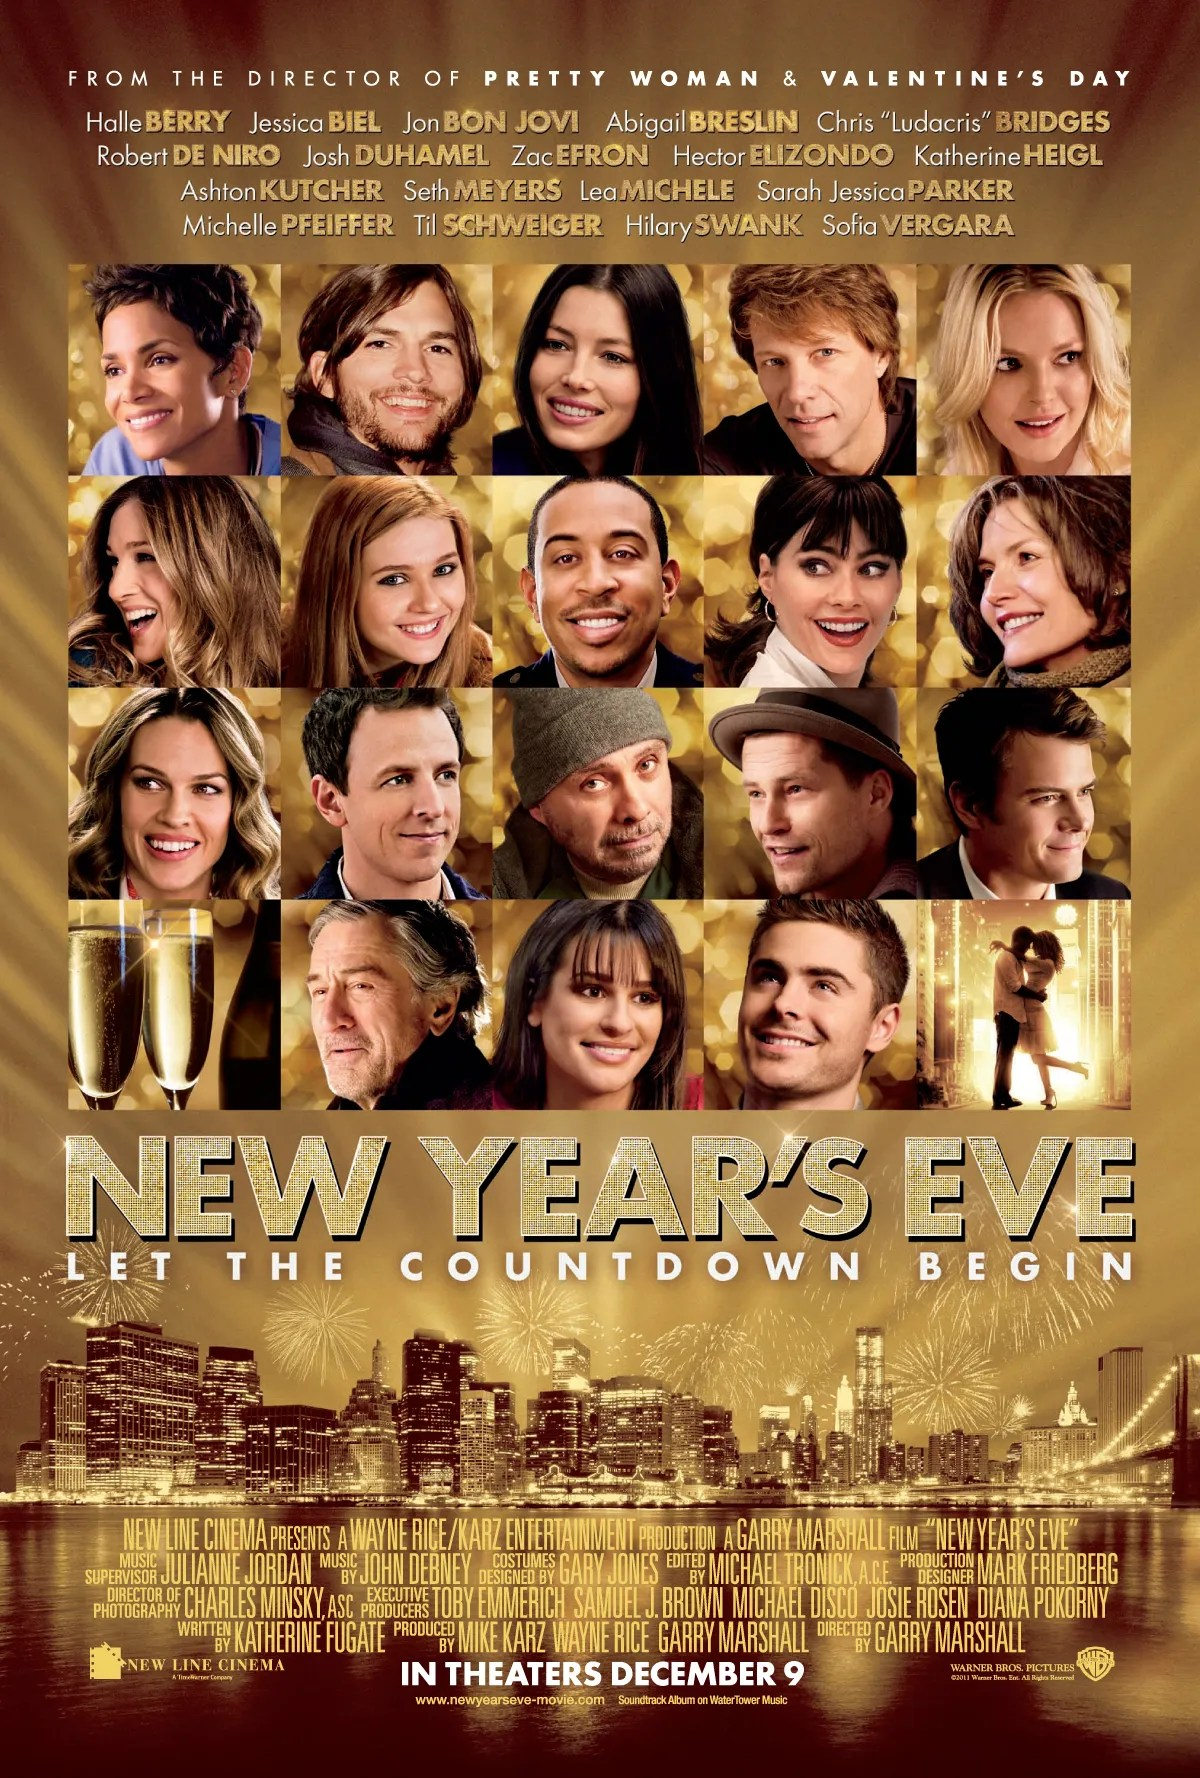 THE RUM DIARY Movie Poster NEW YEAR S EVE Movie Poster   Collider new years eve movie poster 02